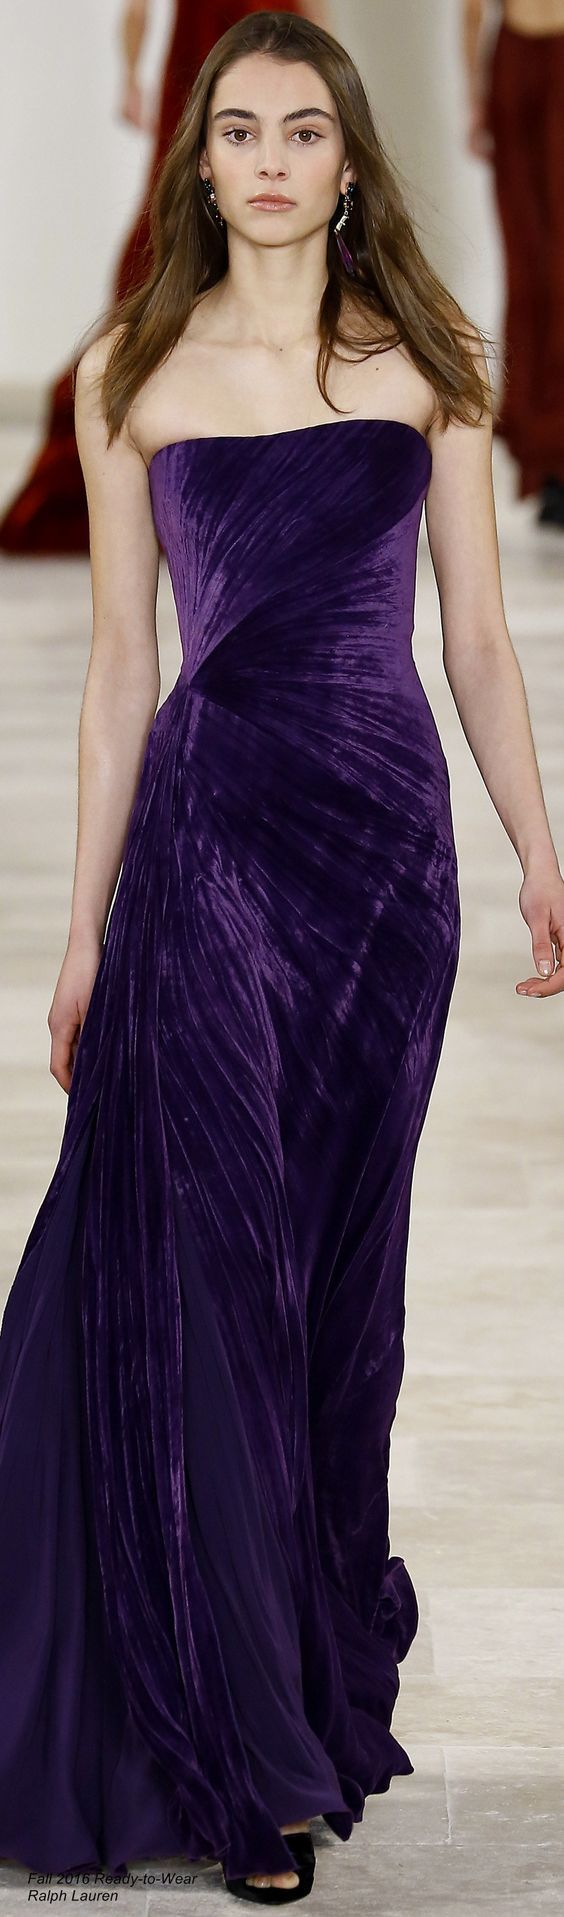 Amazing Velvet Dress Ideas That You WIll Love To See